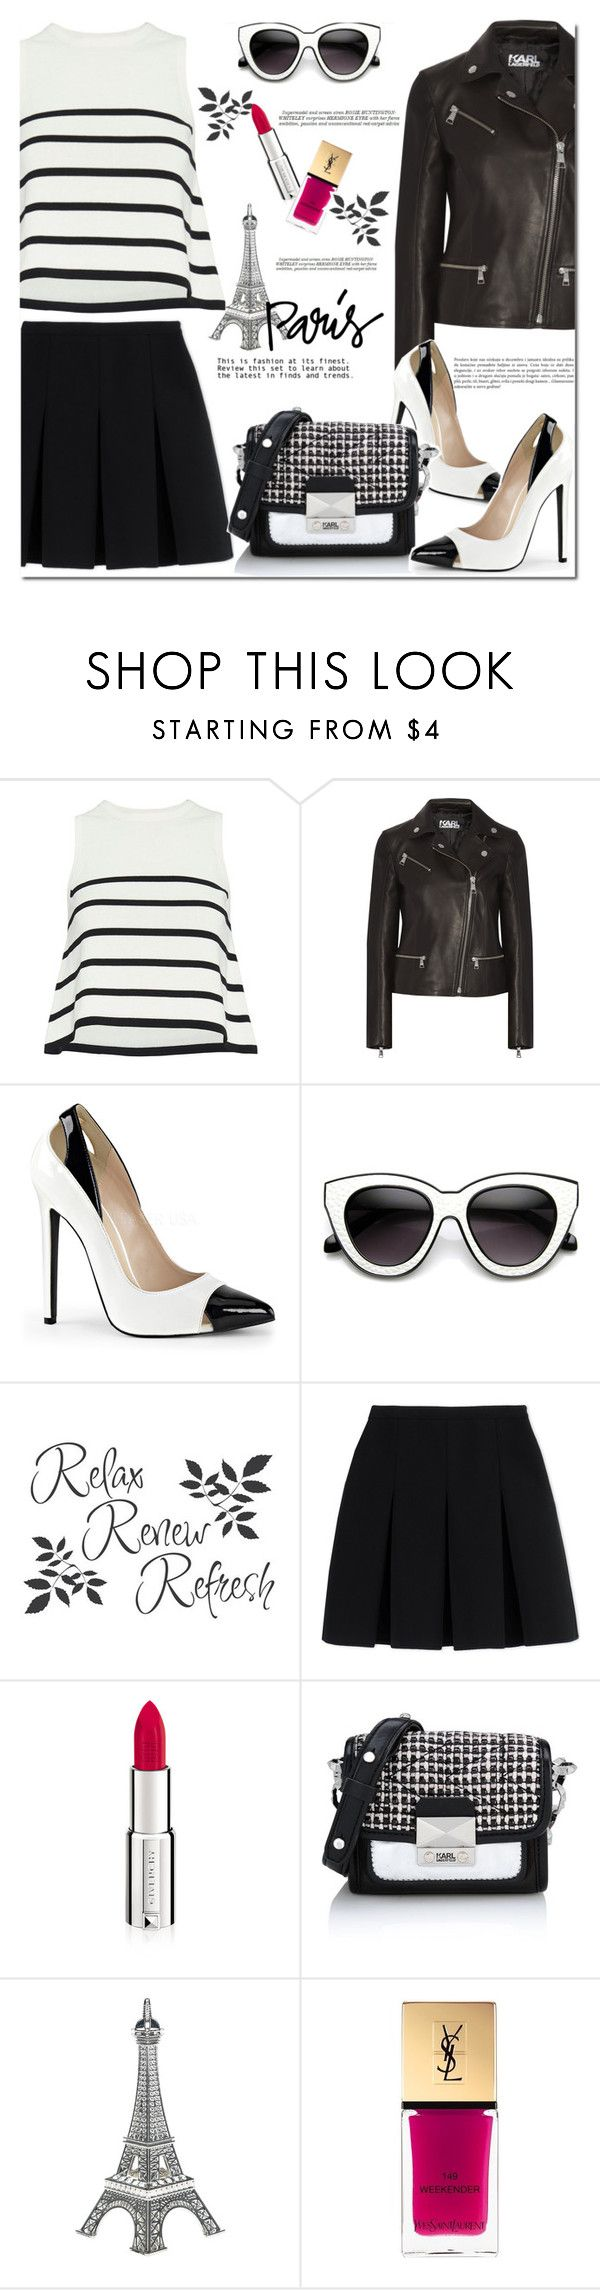 """""""One Direction: Striped Shirts"""" by huda-alalawi ❤ liked on Polyvore featuring moda, Cardigan, Karl Lagerfeld, INDIE HAIR, Alexander Wang, Givenchy, Yves Saint Laurent, Whiteley, stripes y polyvoreeditorial"""